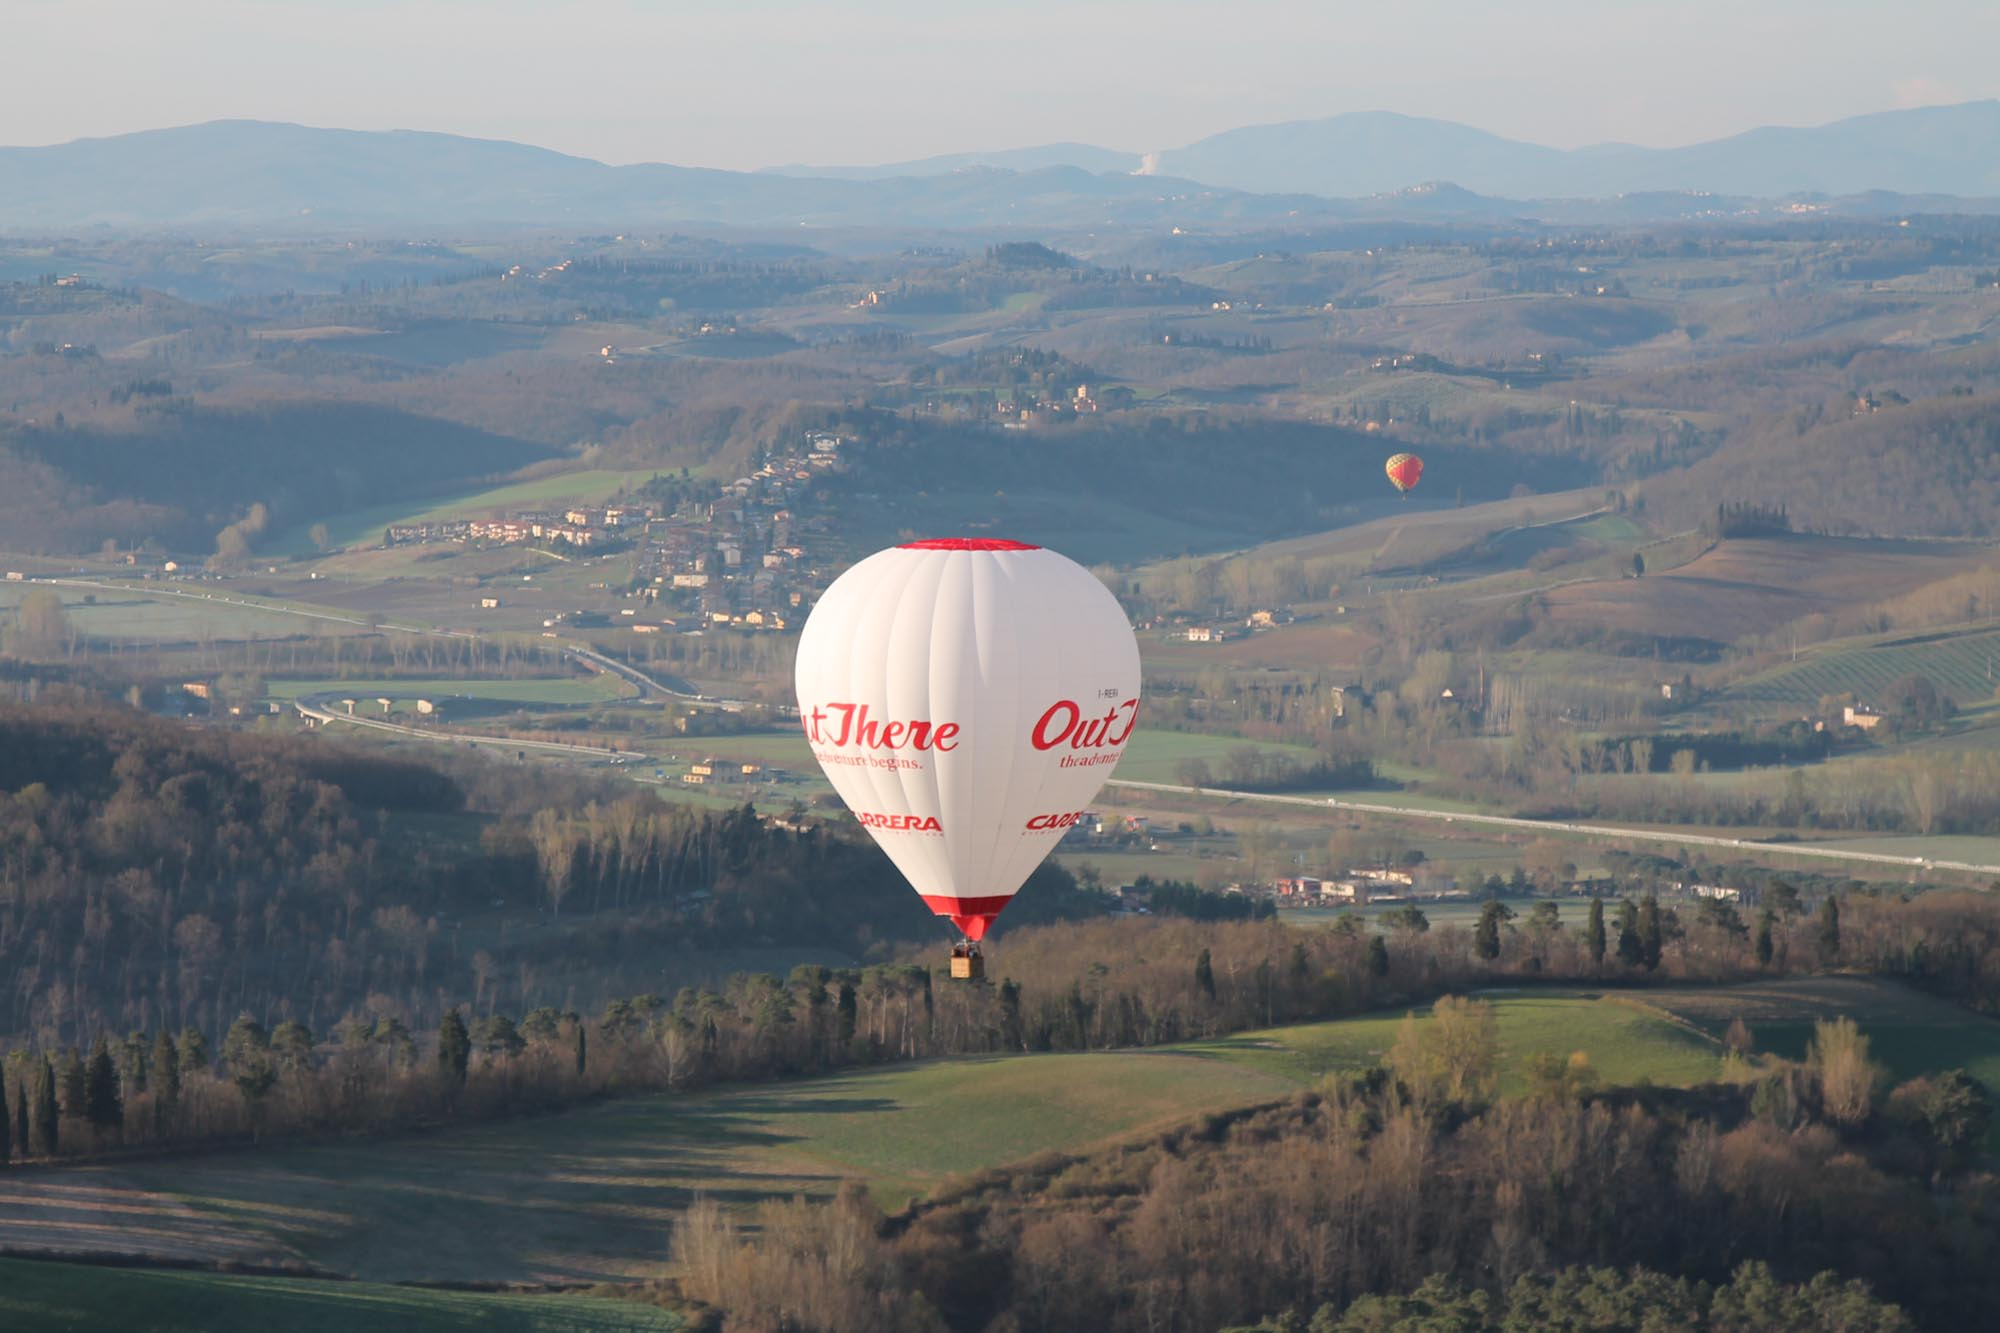 Hot Air Balloon over Lucca Valley